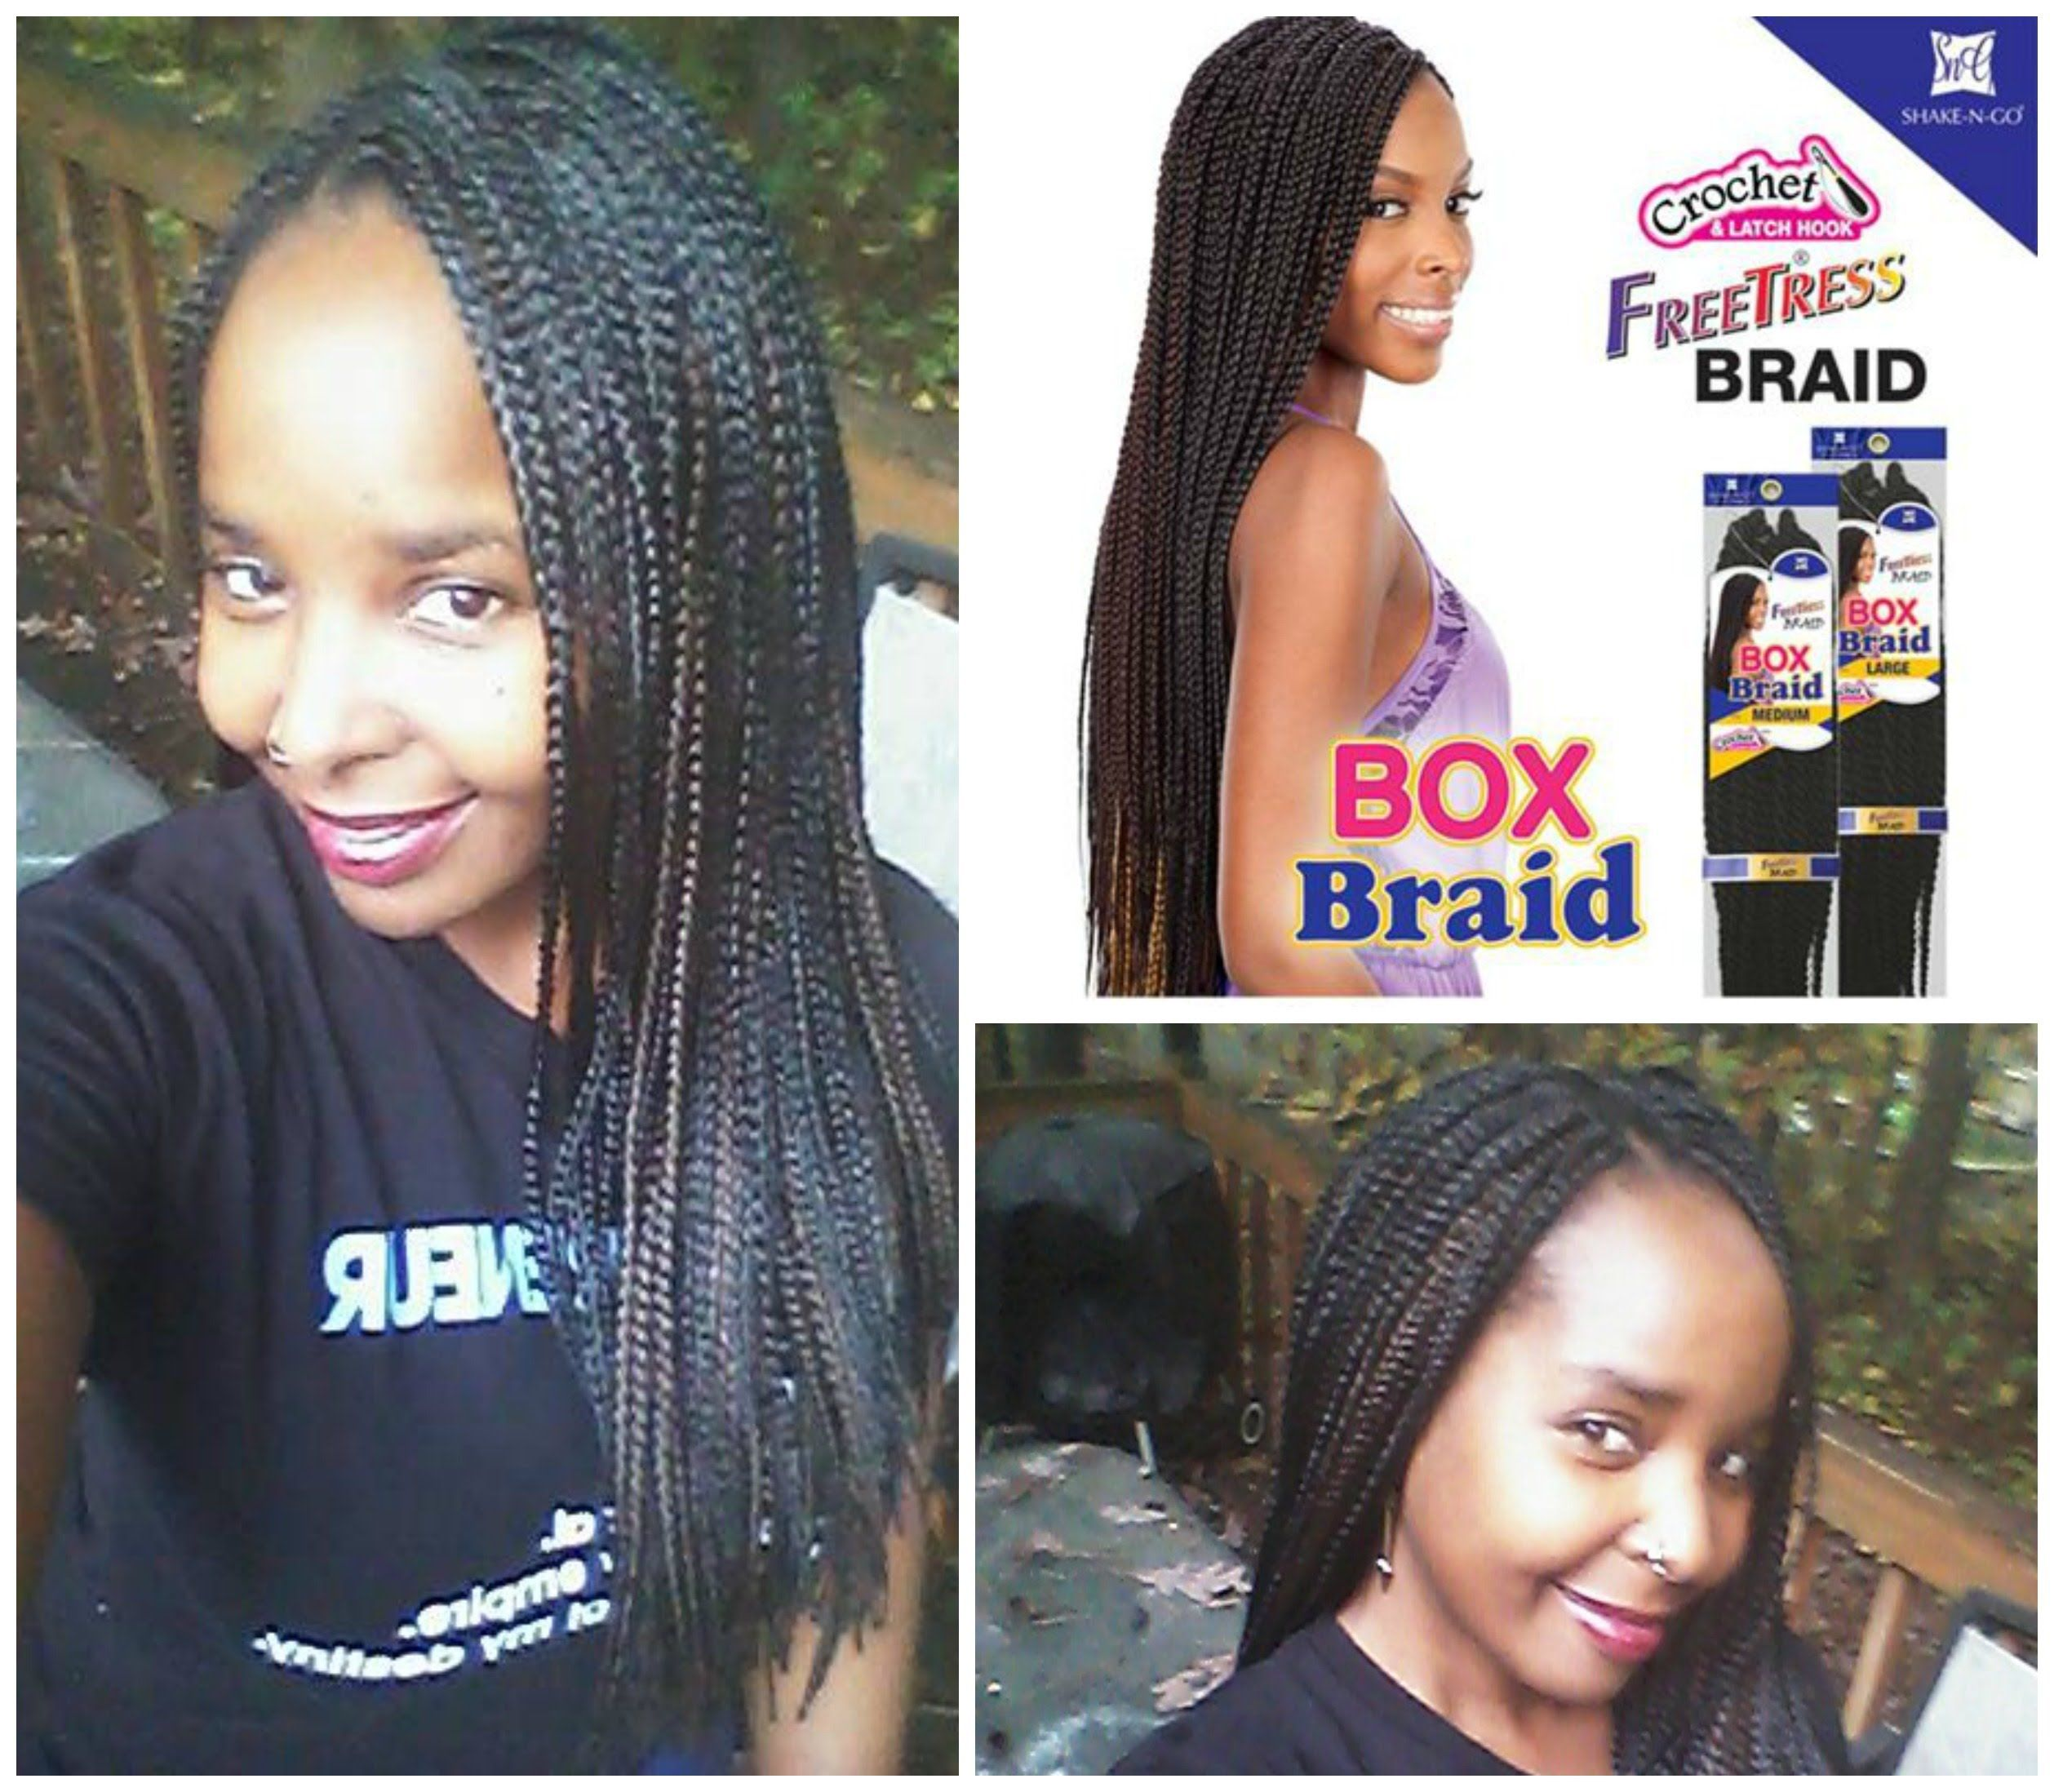 Freetress Box Braid Review And How To